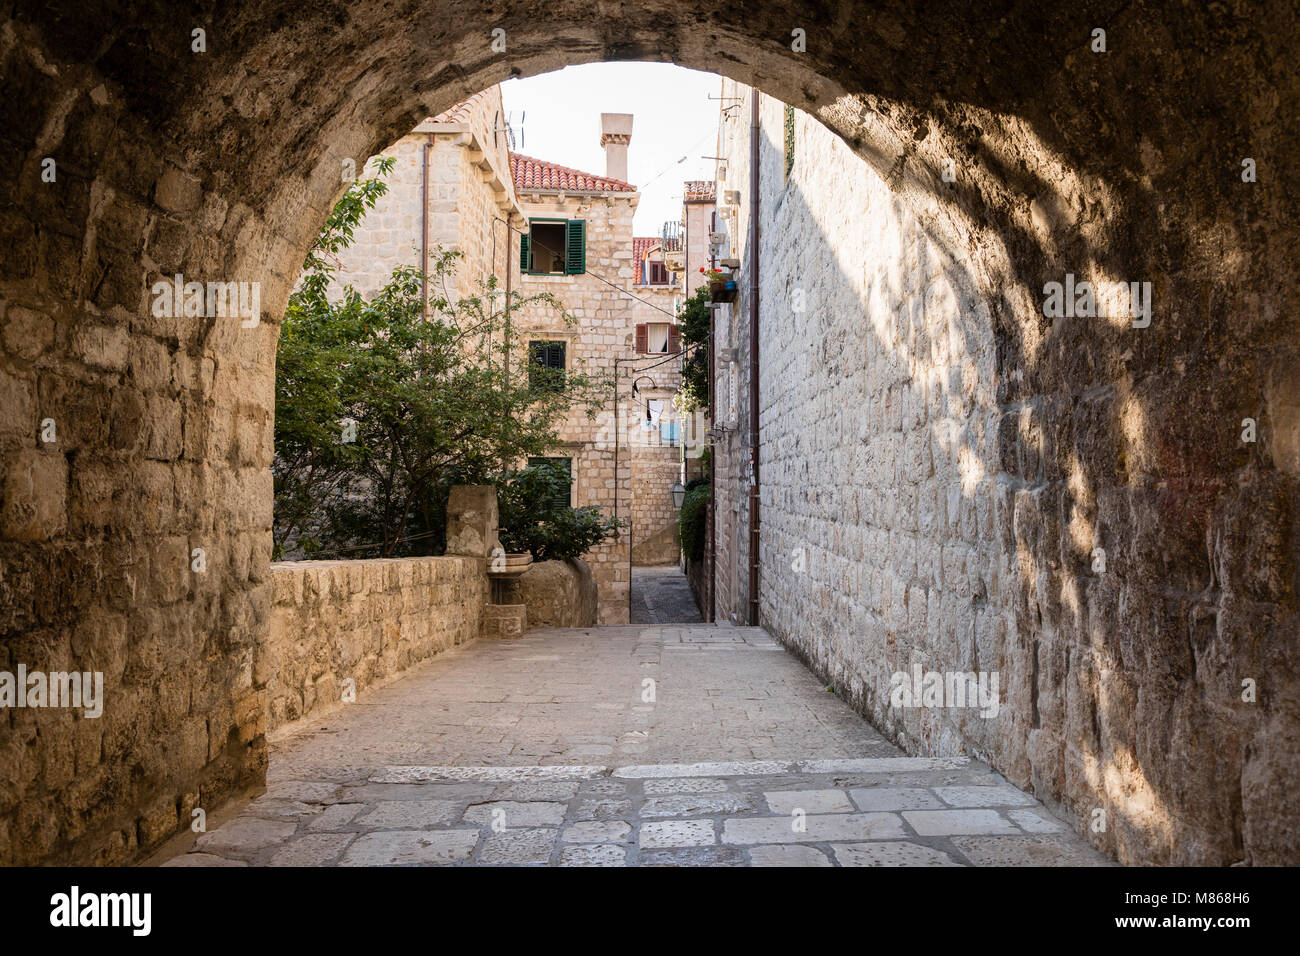 View from an arched bridge onto residential houses in historic Dubvronik in the morning light - Stock Image